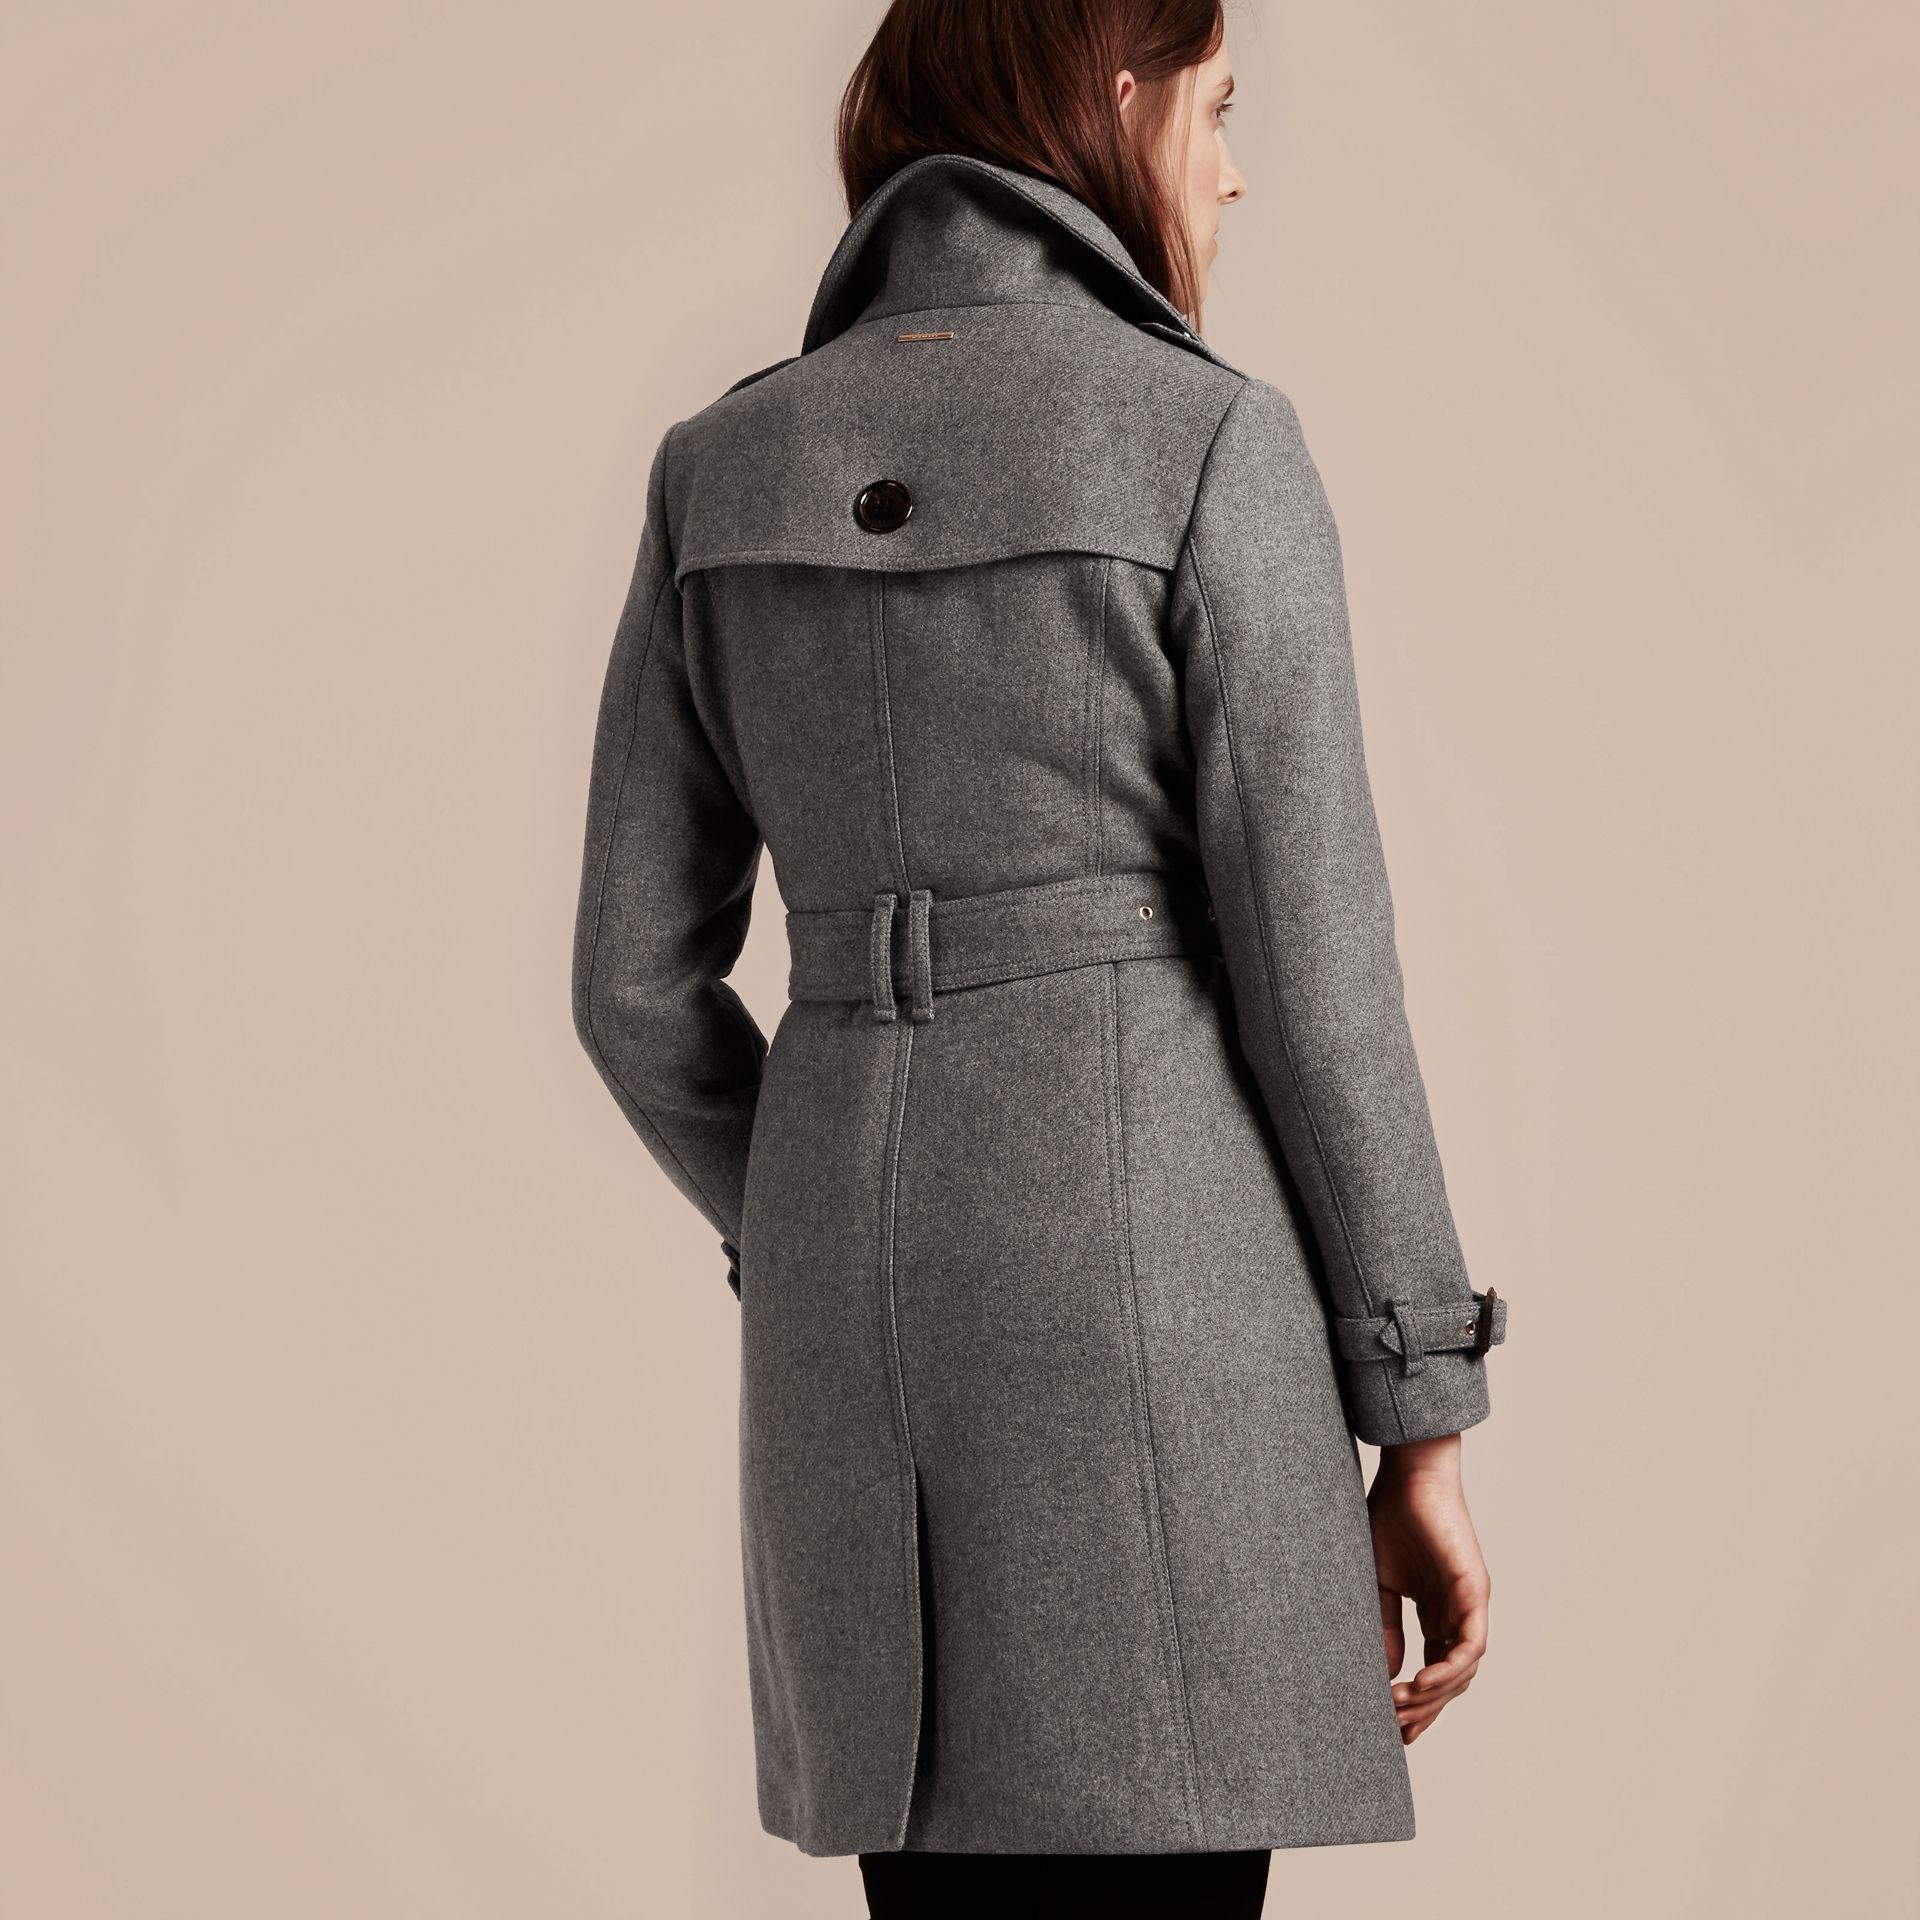 Steel grey melange Technical Wool Cashmere Funnel Neck Coat Steel Grey Melange - gallery image 3